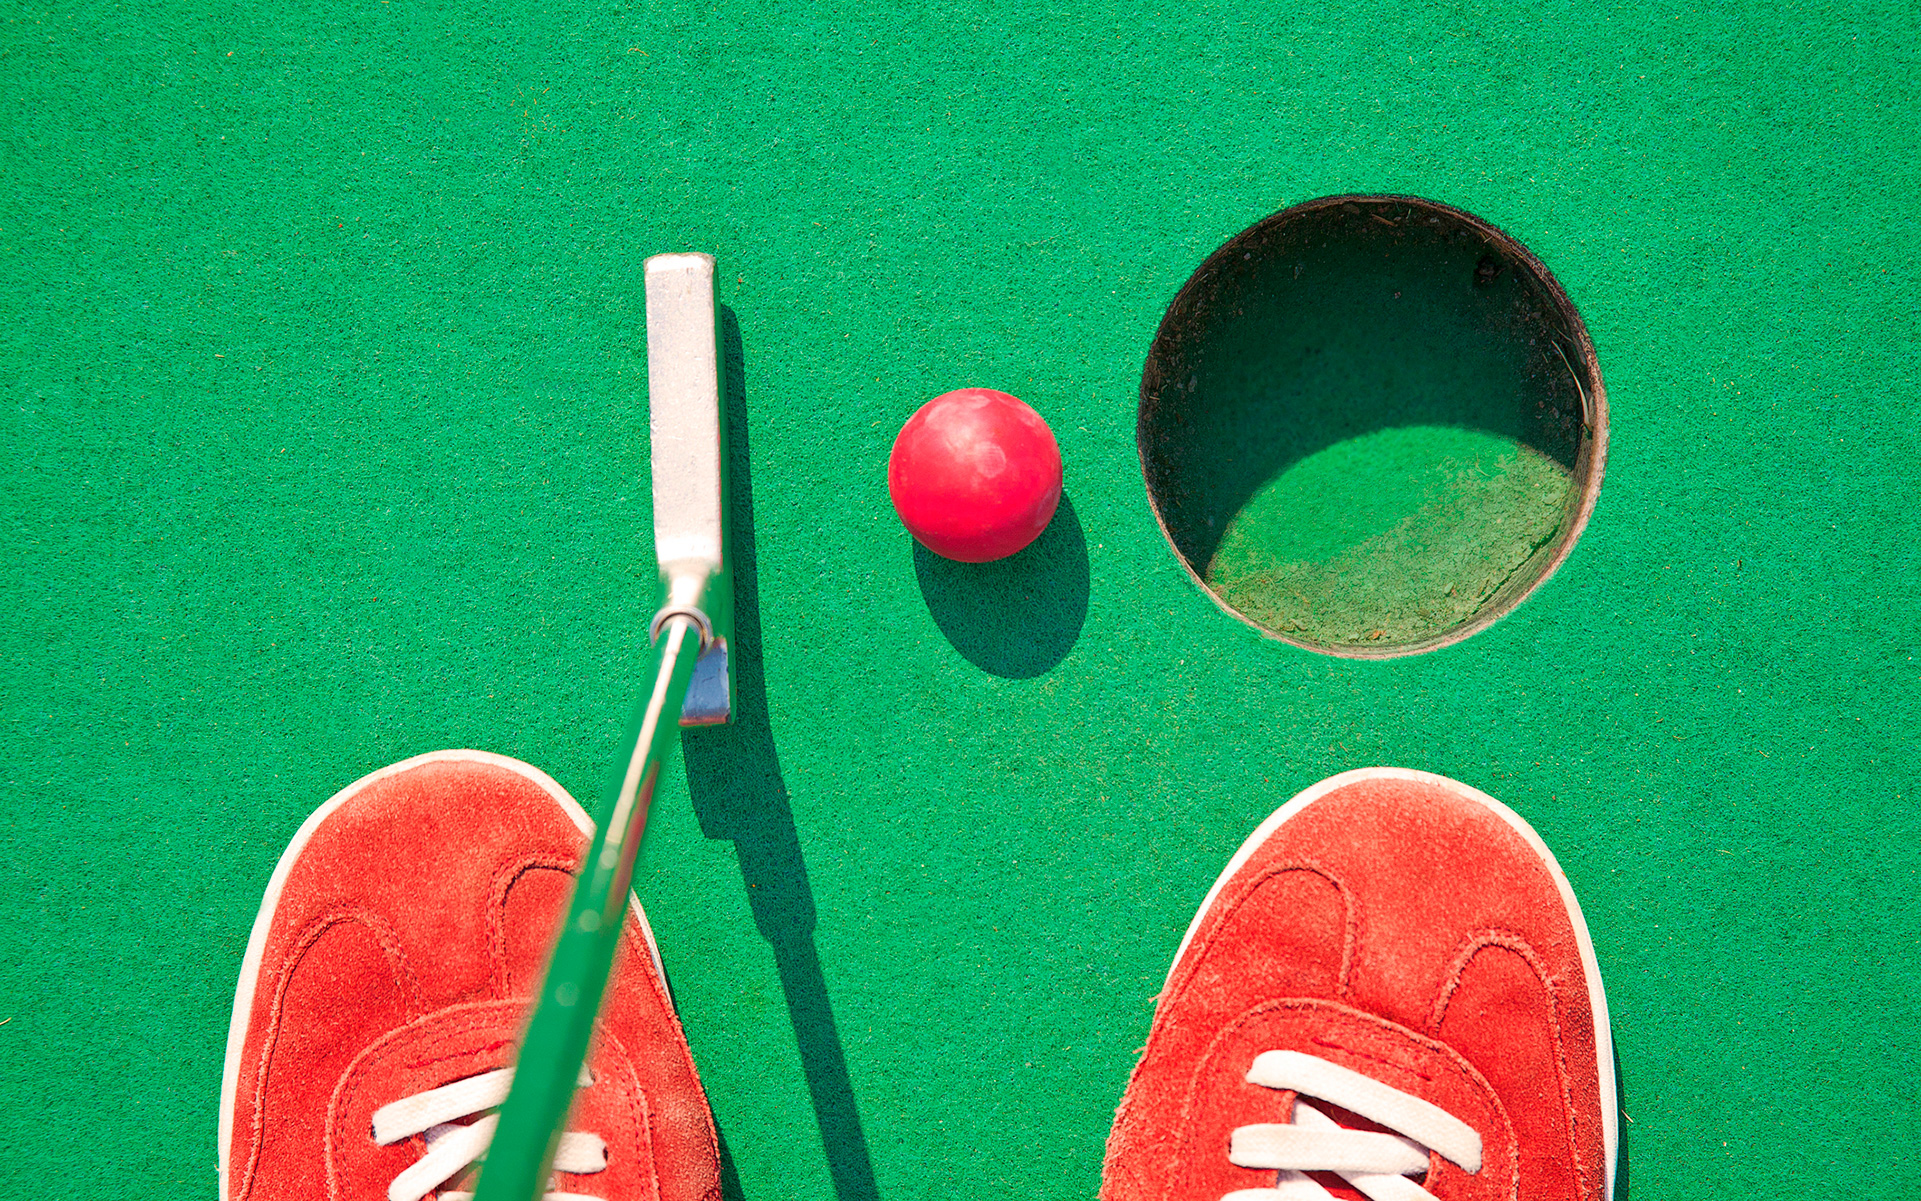 Mini Golf: Is It Worth the High?